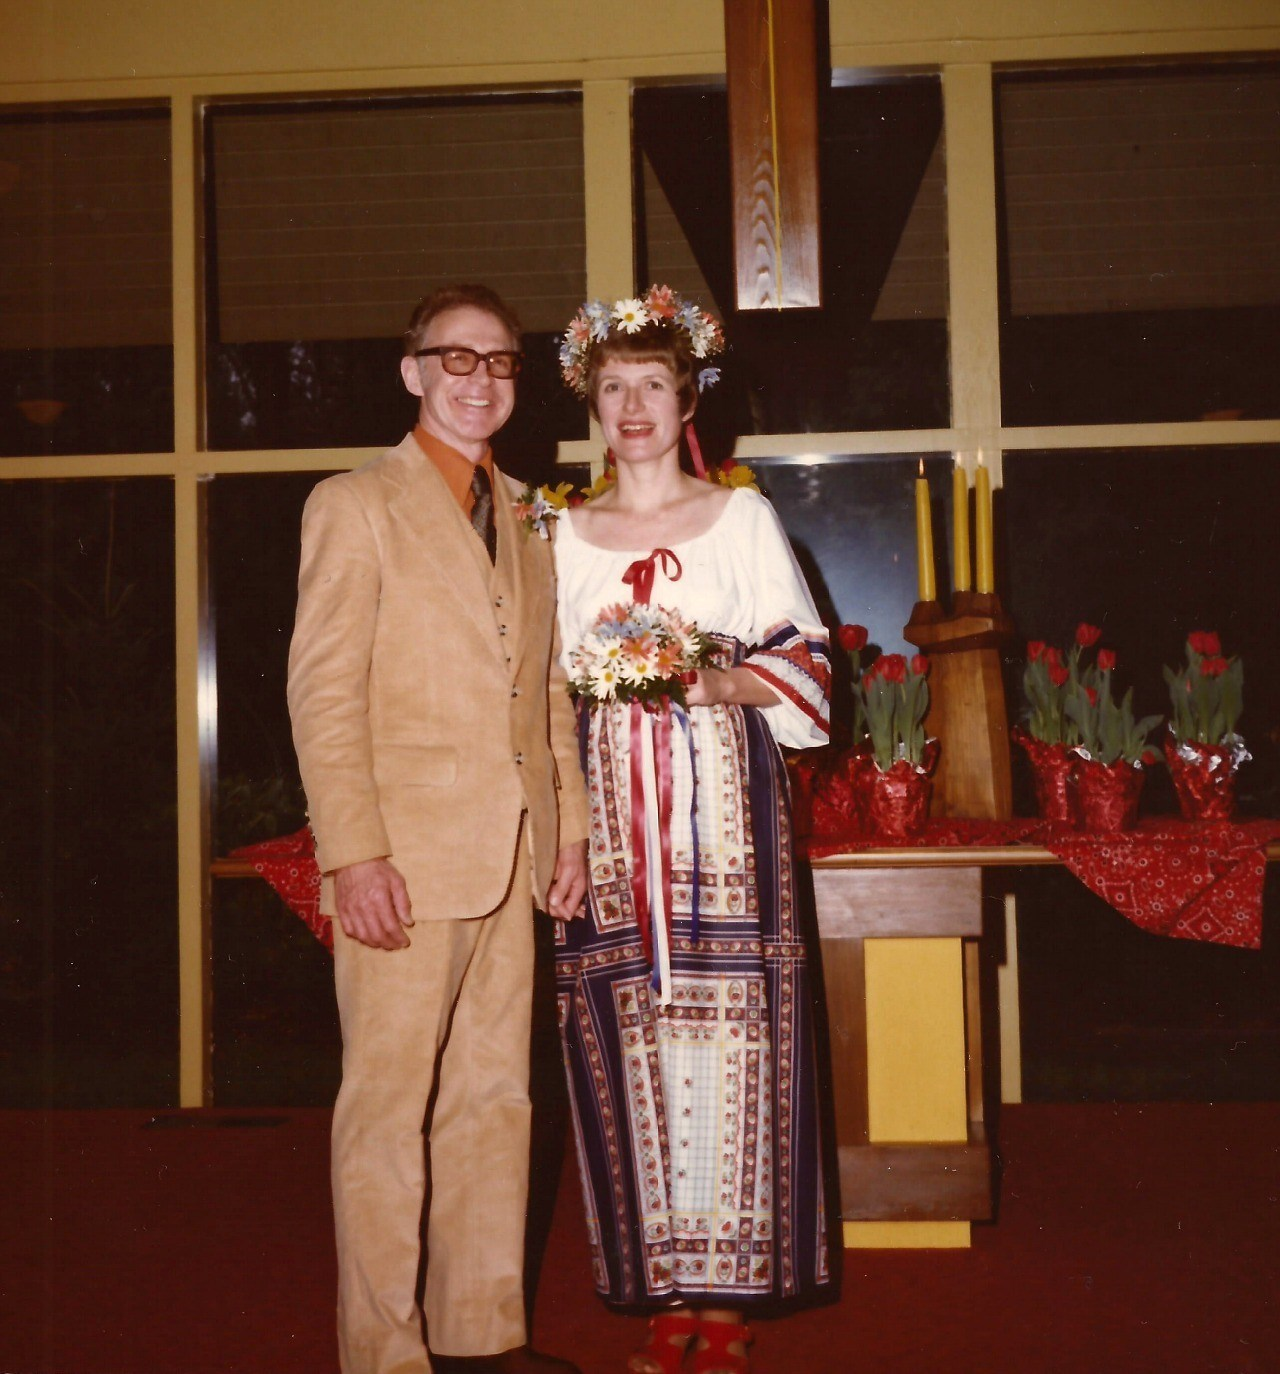 Mom and Dad's Wedding Day Feb 12, 1977